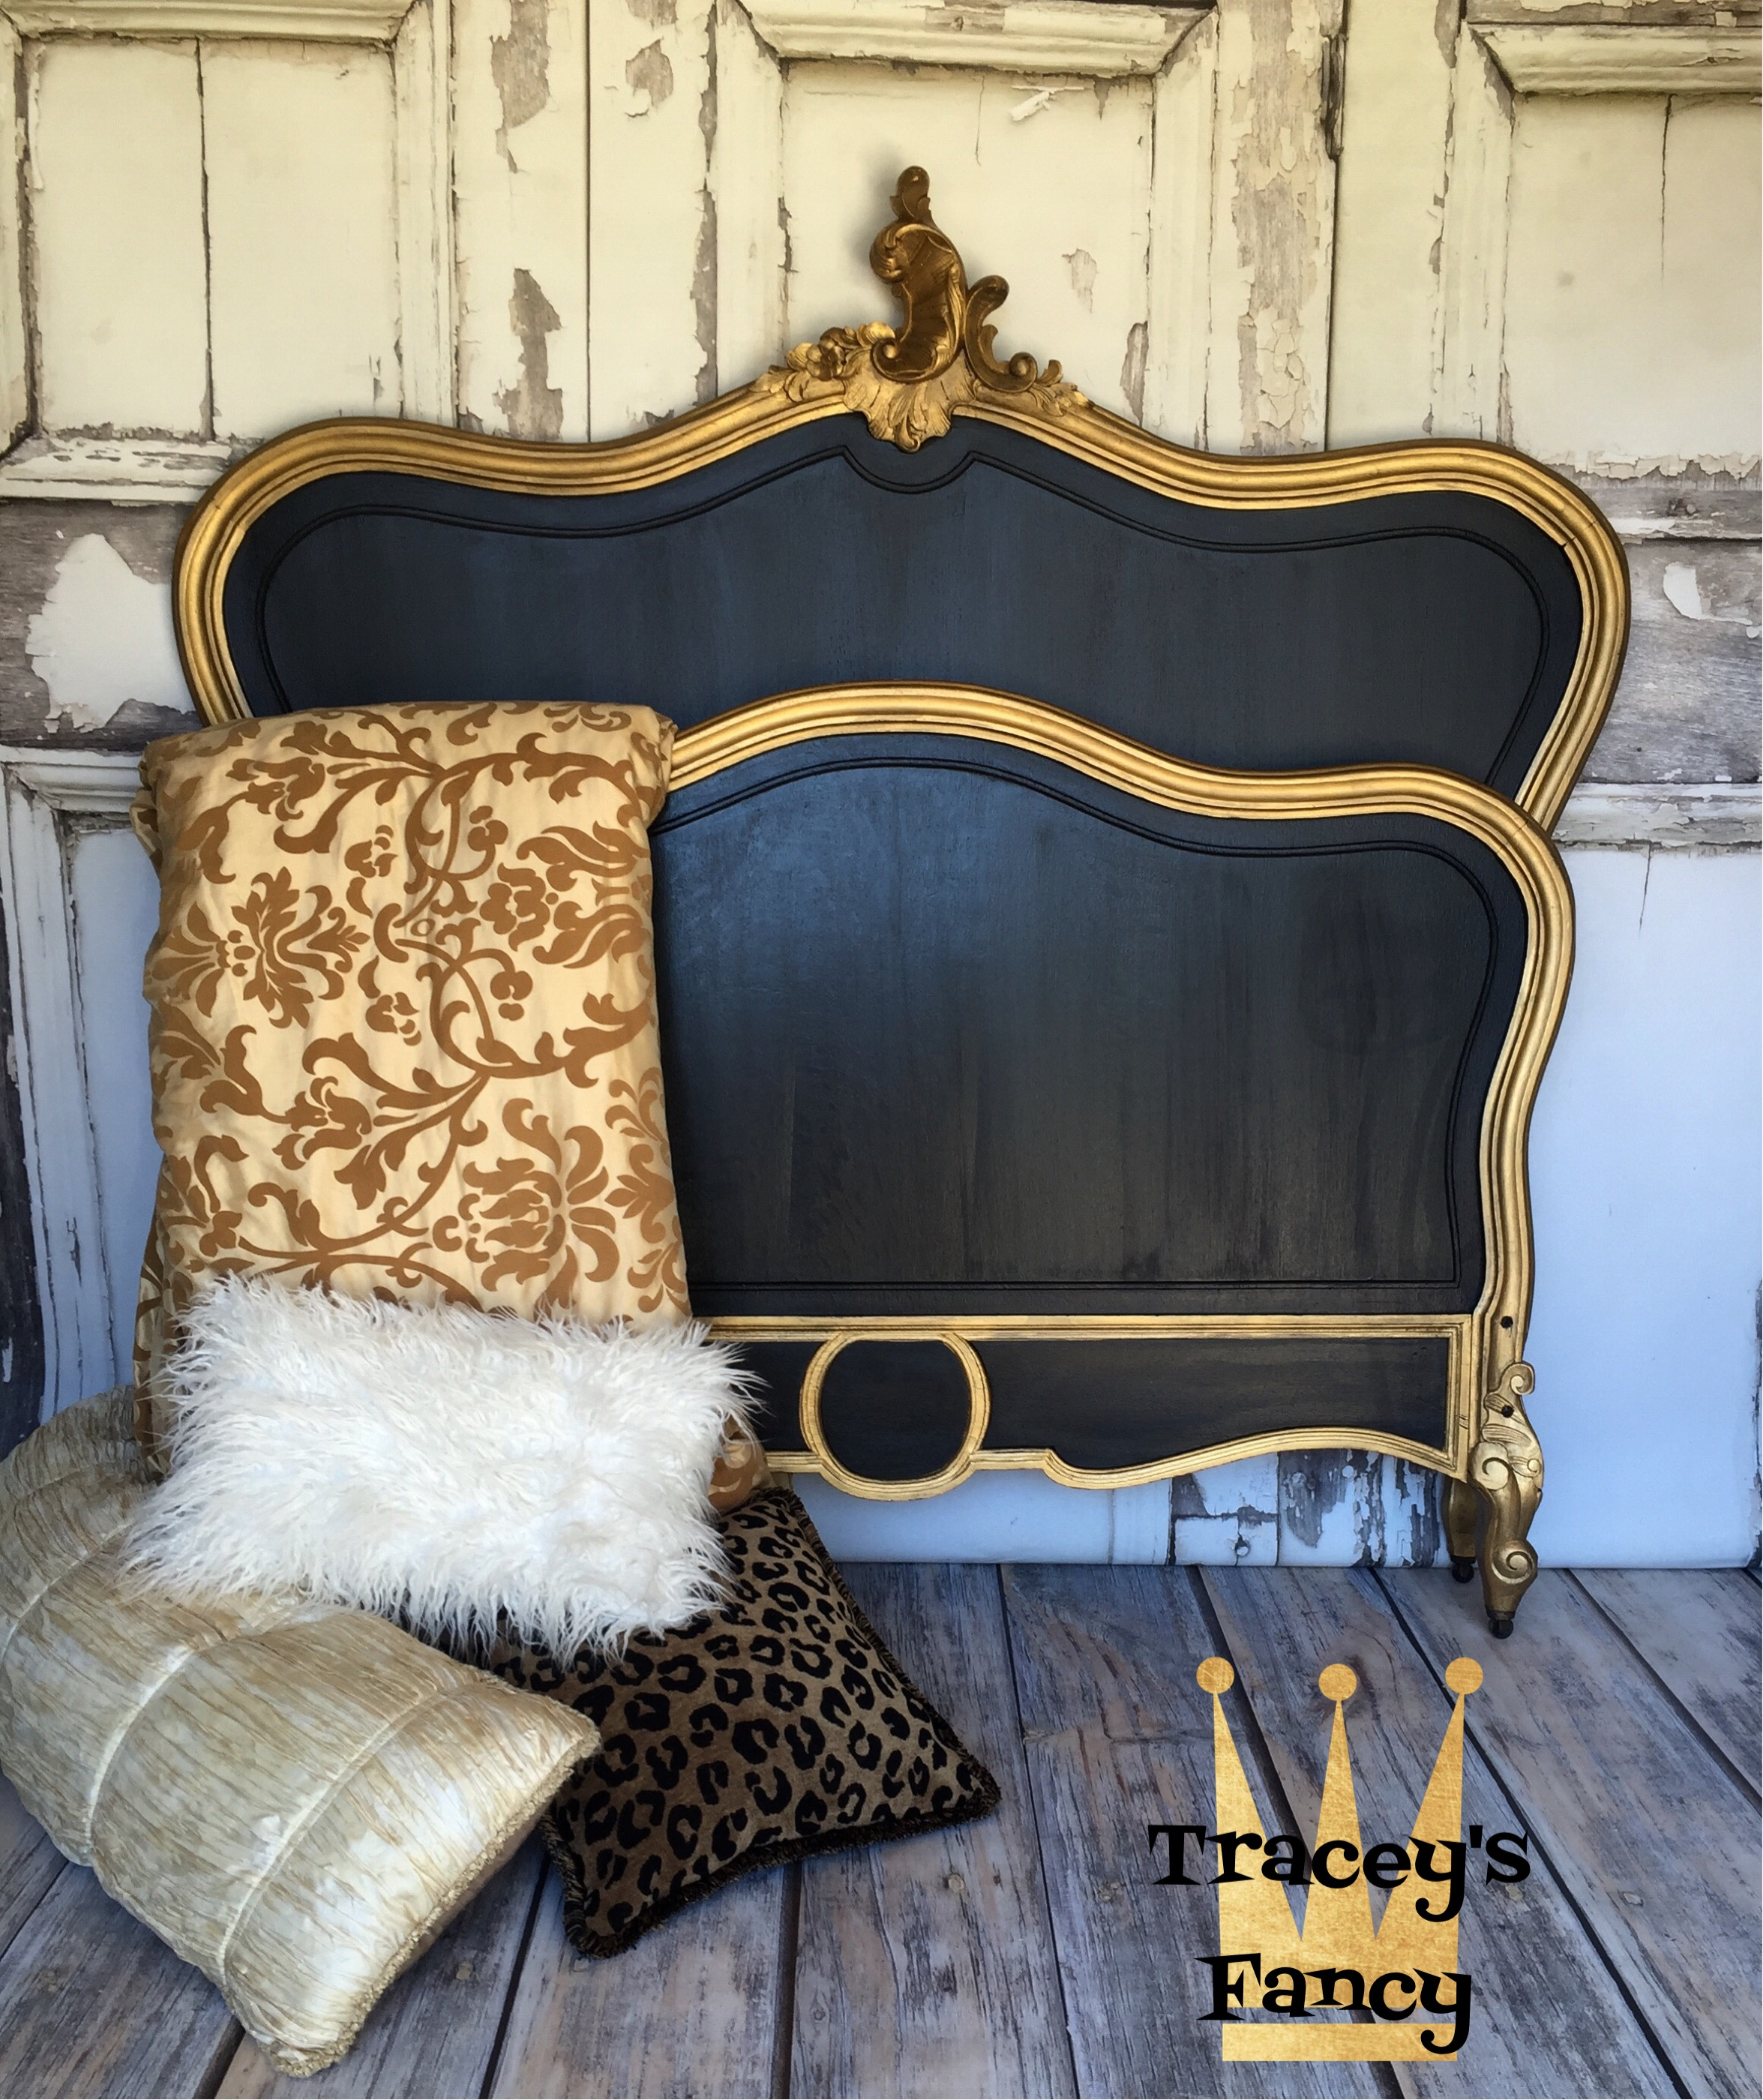 Painted Headboard | Tracey's Fancy